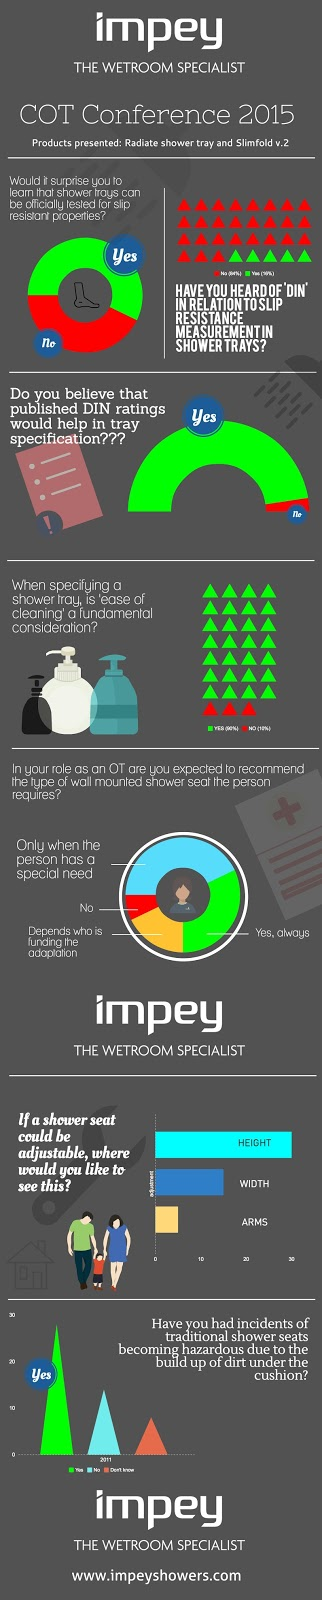 Impey Showers infographic on DIN graded shower tray slip resistance